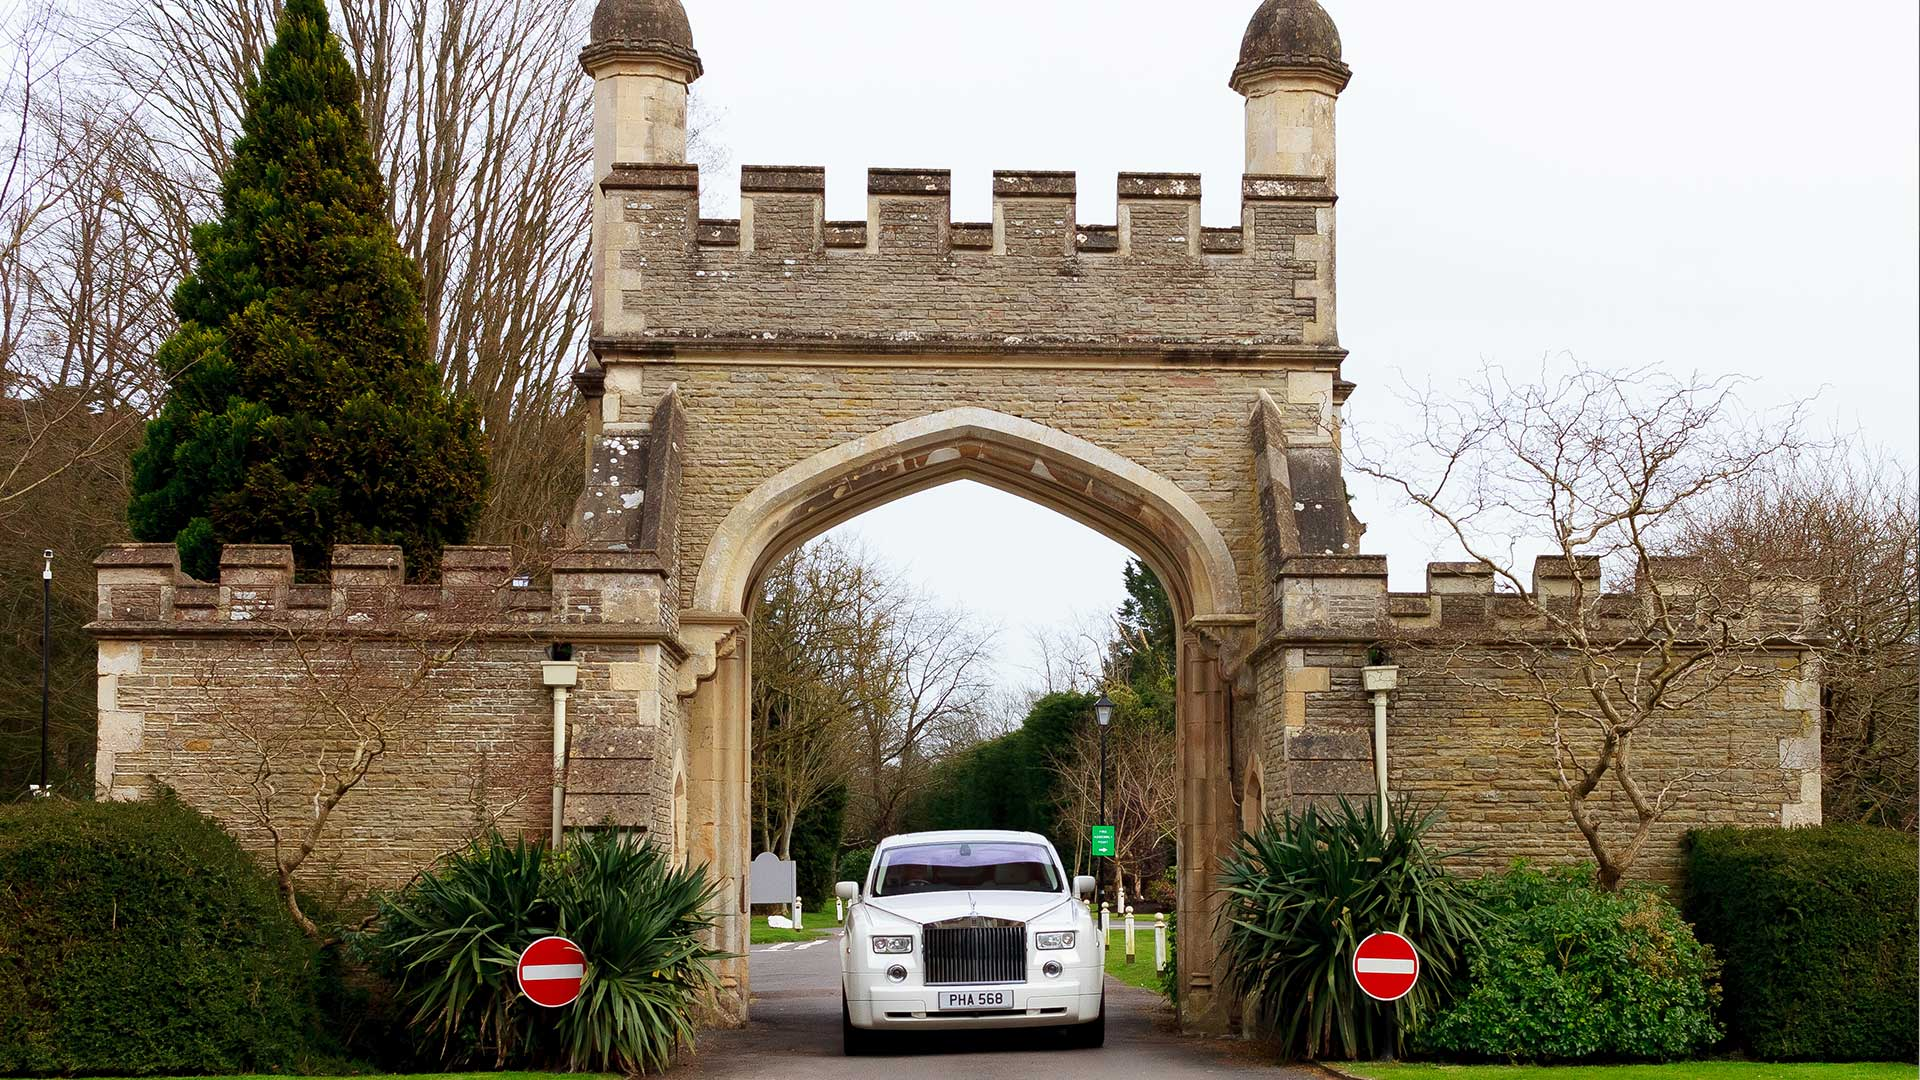 The Rolls-Royce Phantom in white, arriving at Tortworth Court